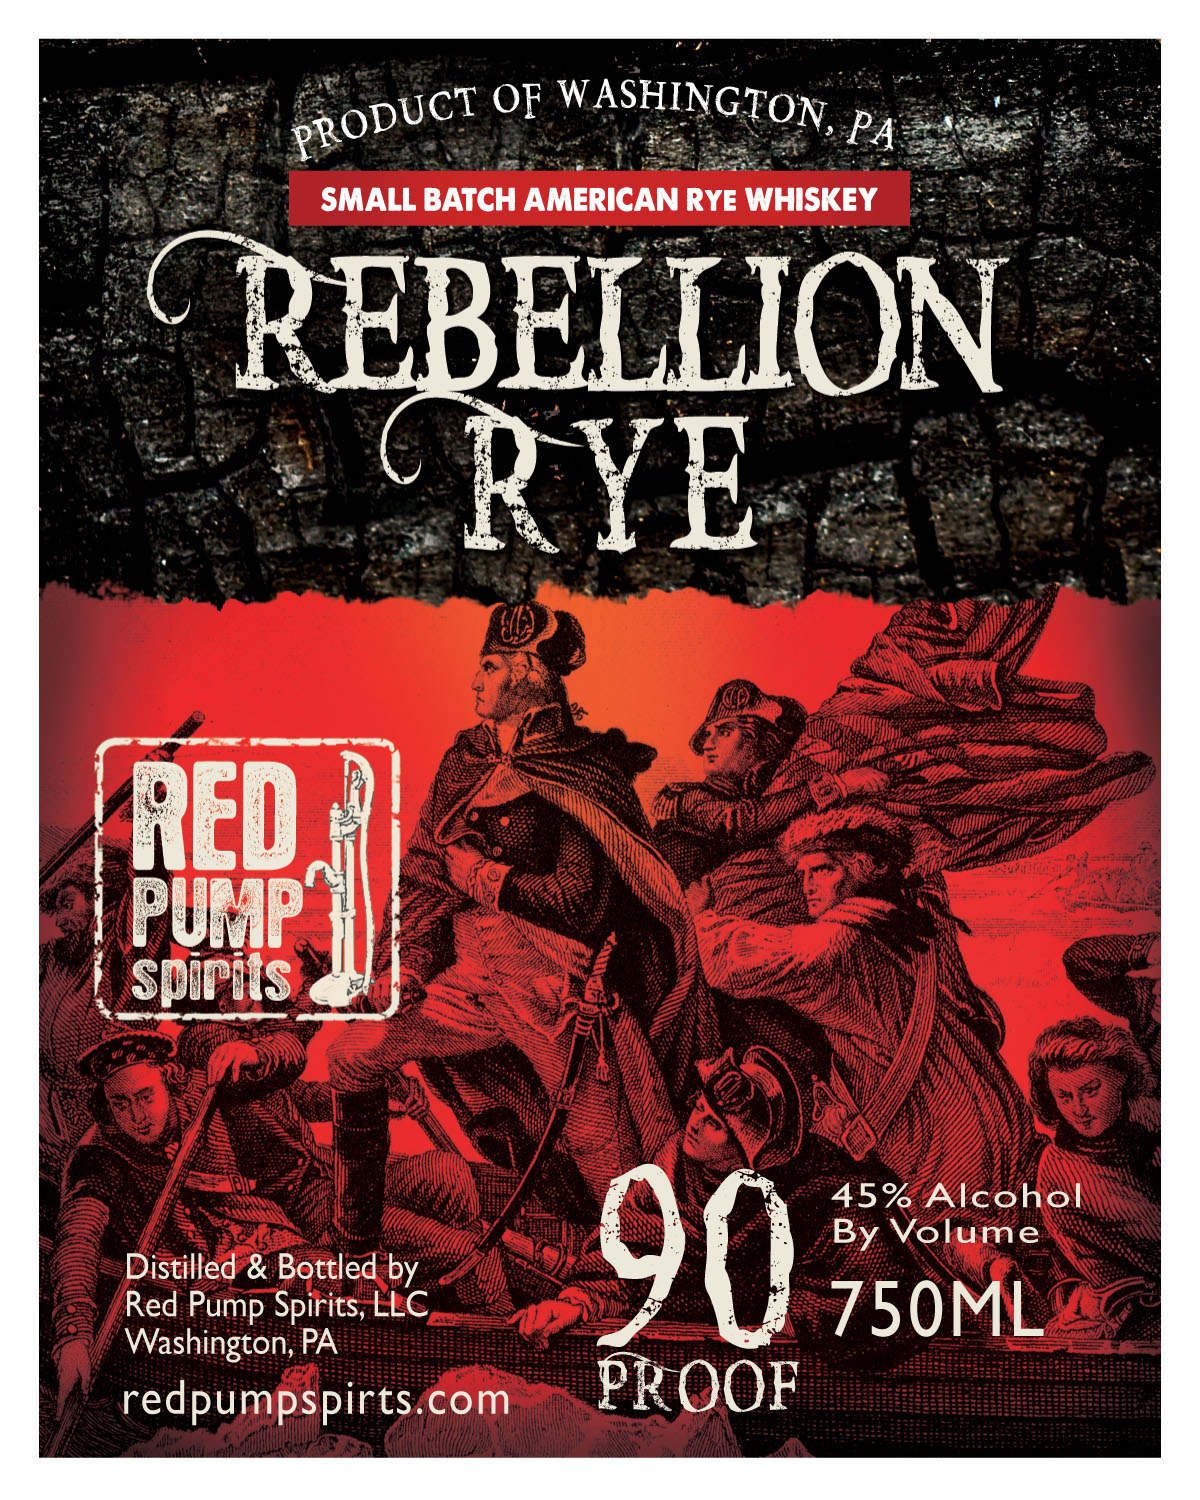 REBELLION RYE WHISKEY - We named this whiskey after those rebellious souls who began the rye whiskey tradition here in Southwest Pennsylvania. It is a tradition that began with the Whiskey Rebellion of the late 18th Century and continued through Prohibition. We have revived that spirit with this classic Monongahela Style Rye. It's spicy and bold like the people who made it and the souls who drank it. It's an all rye grain barrel aged whiskey, and it's available for you to sip or use as a base to create one of the classic rye cocktails - an Old Fashioned, Manhattan or Sazerac.We bottle it at 90 Proof /45% ABV